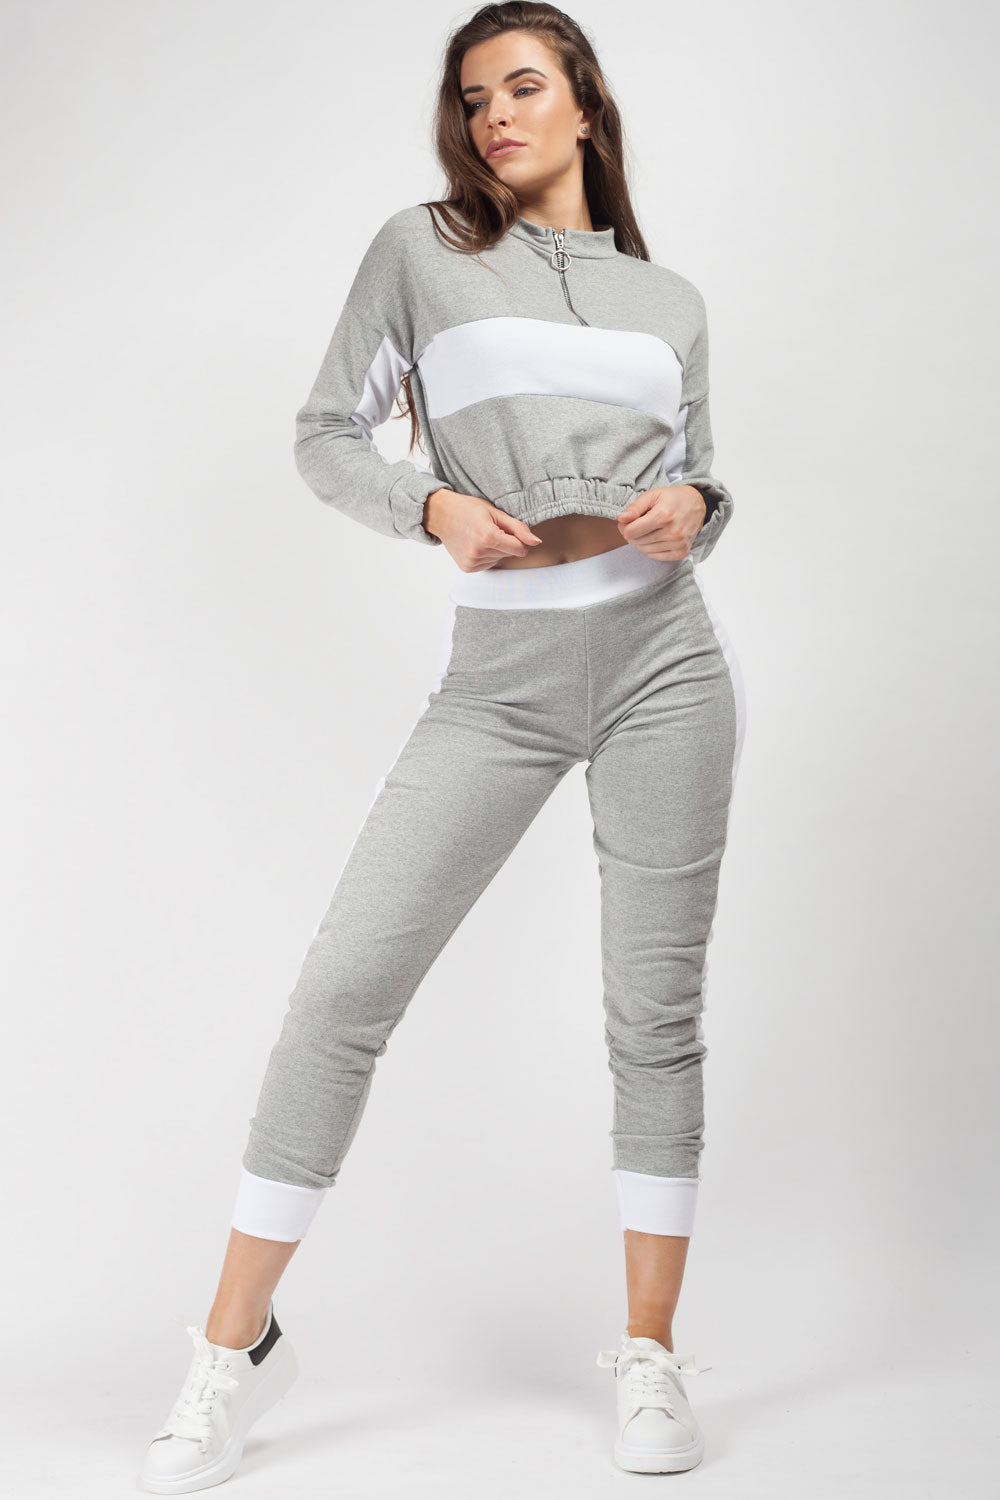 womens tracksuit set styledup fashion